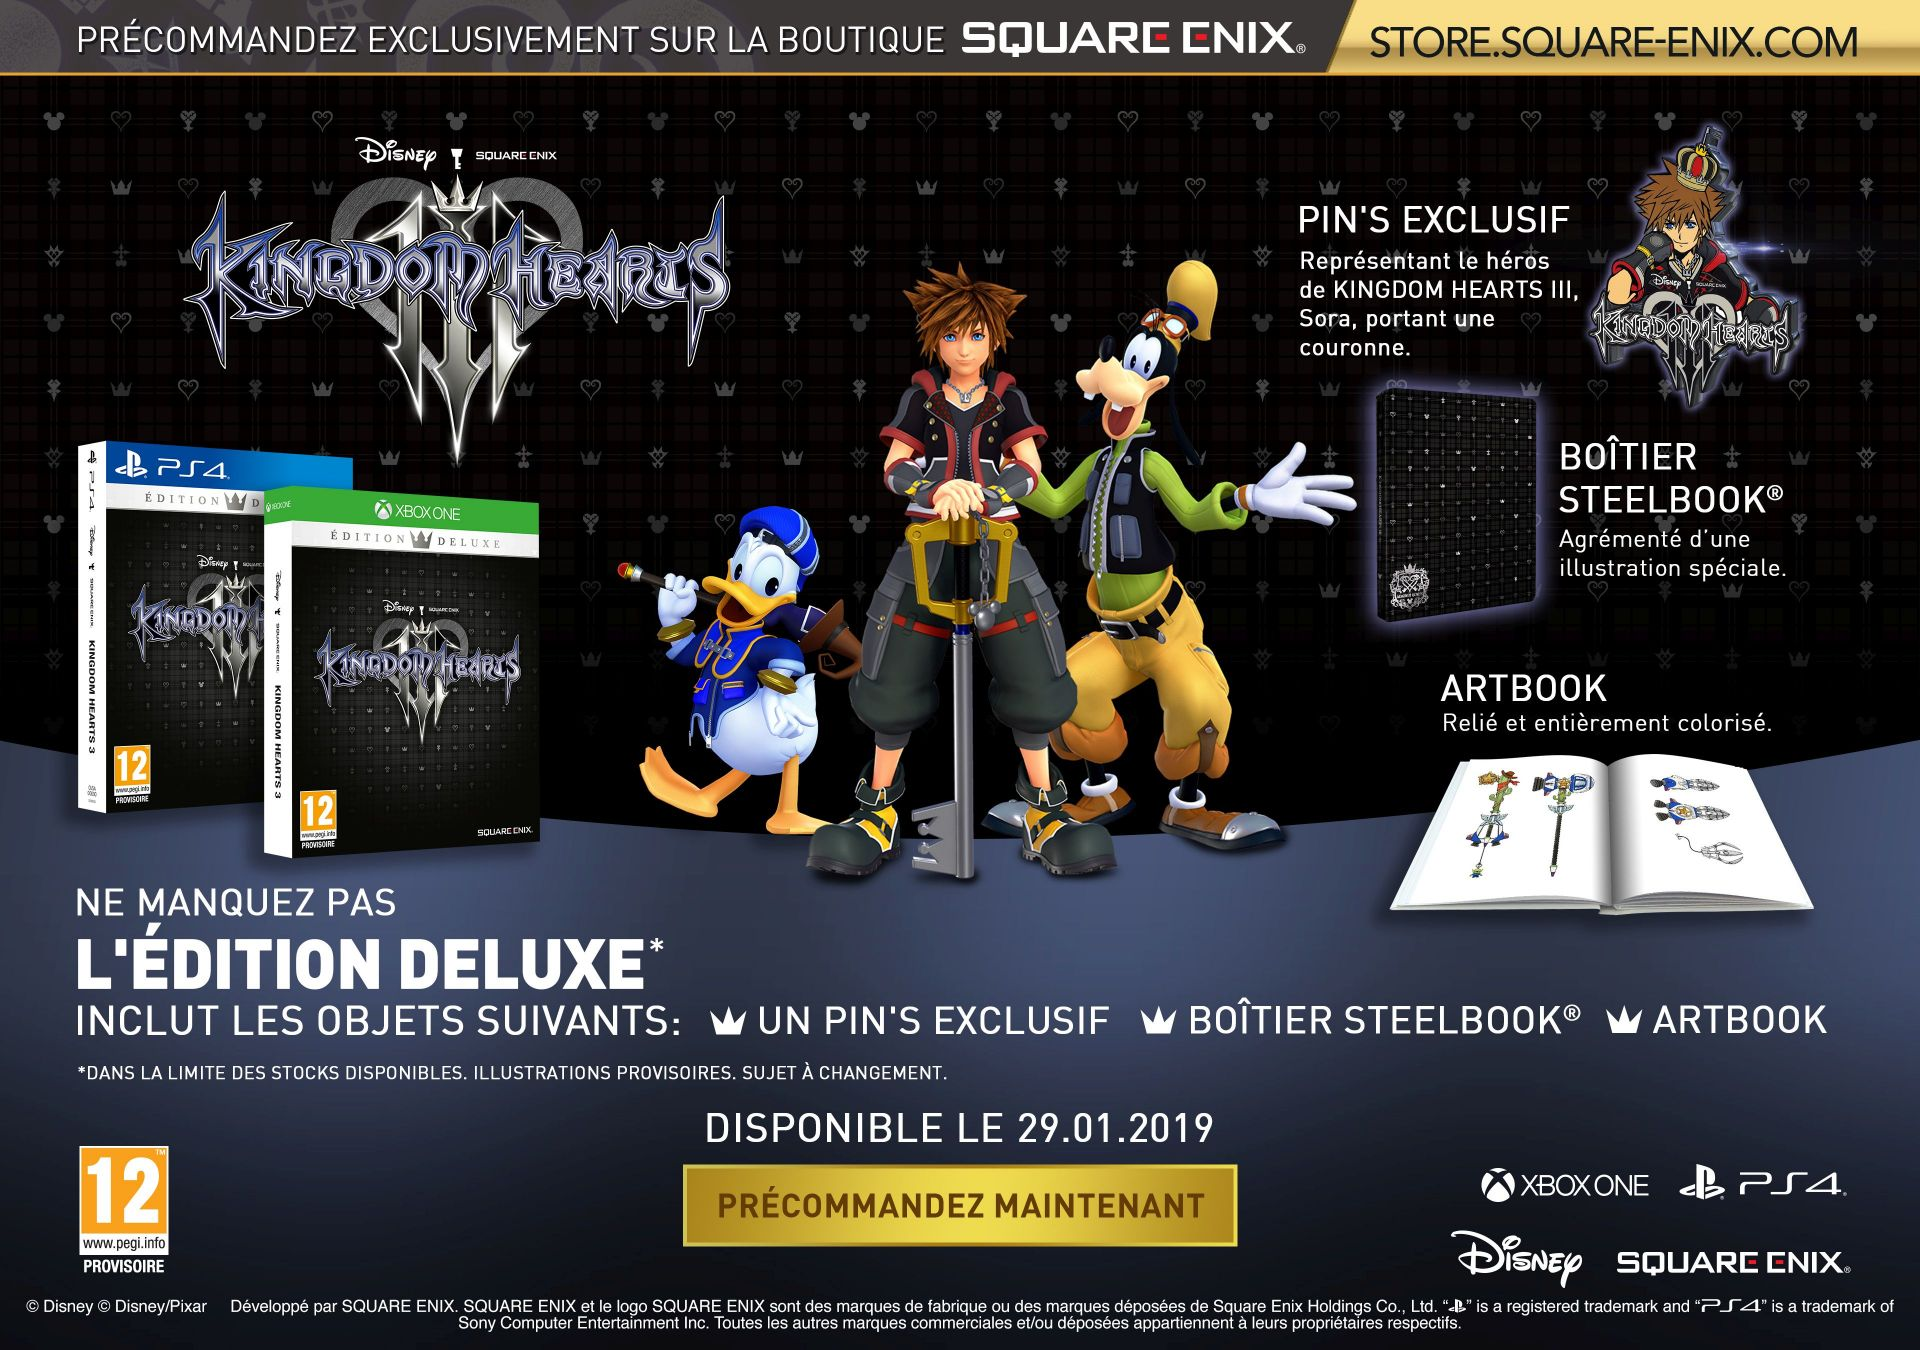 Bundle KINGDOM HEARTS III DELUXE EDITION (Avec Steelbook) + BRING ARTS FIGURES